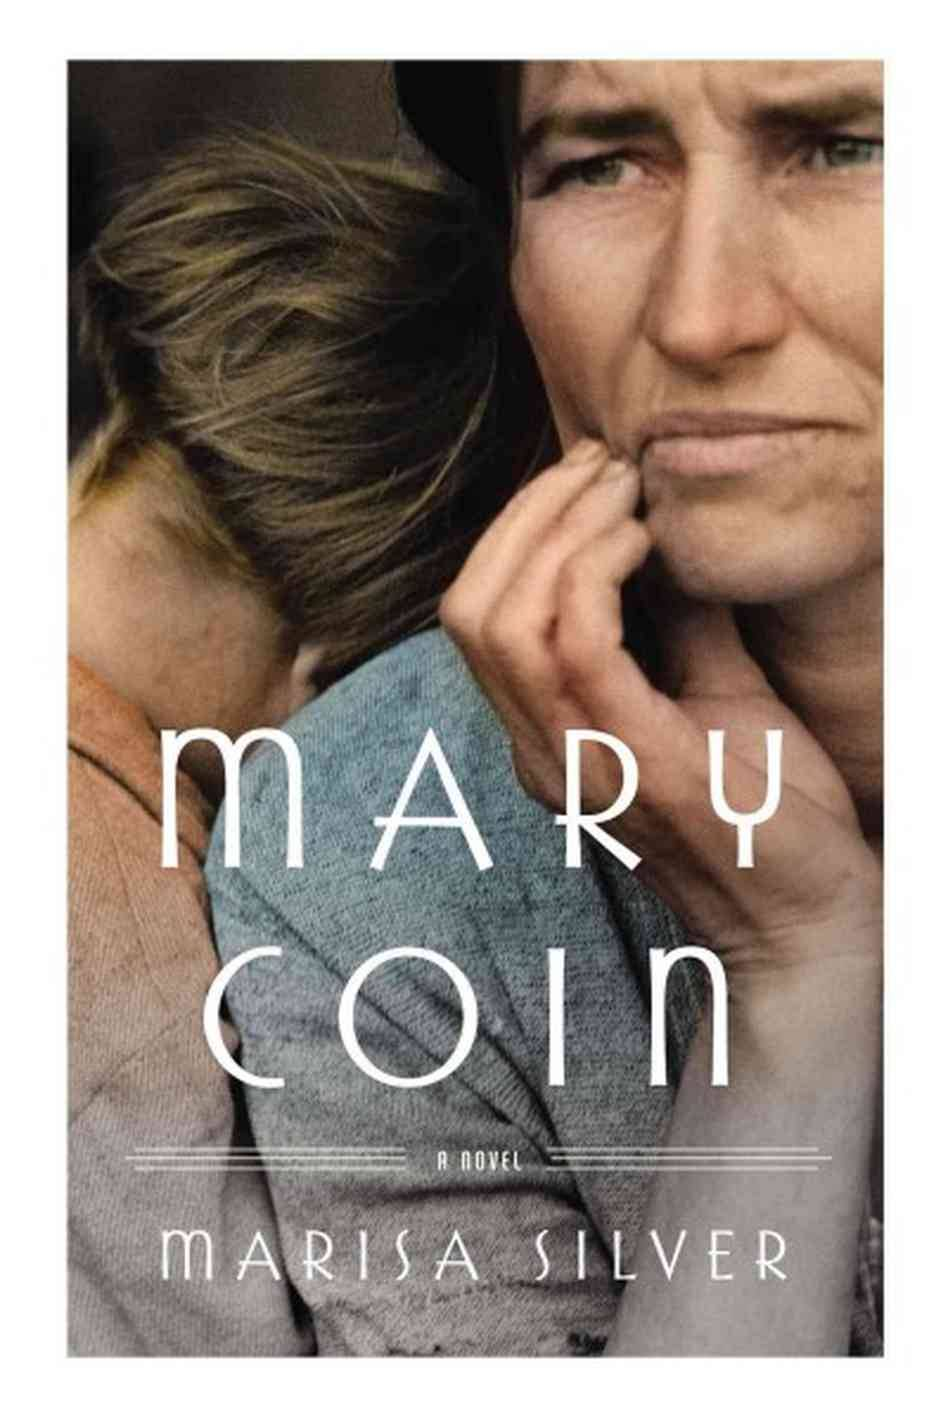 """Marisa Silver's third novel,  Mary Coin, inspired by Dorothea Lange's iconic Depression-era ""Migrant Mother"" photograph, depicts three contrasting yet connected lives: the photographer, Vera Dare; the photo's subject, Mary Coin; and a professor in present-day California, Walker Dodge. The book manages to feel intimate and personal, even as it spans decades and takes on big subjects like history, motherhood and art."" The Space Between: The Millions Interviews Marisa Silver"